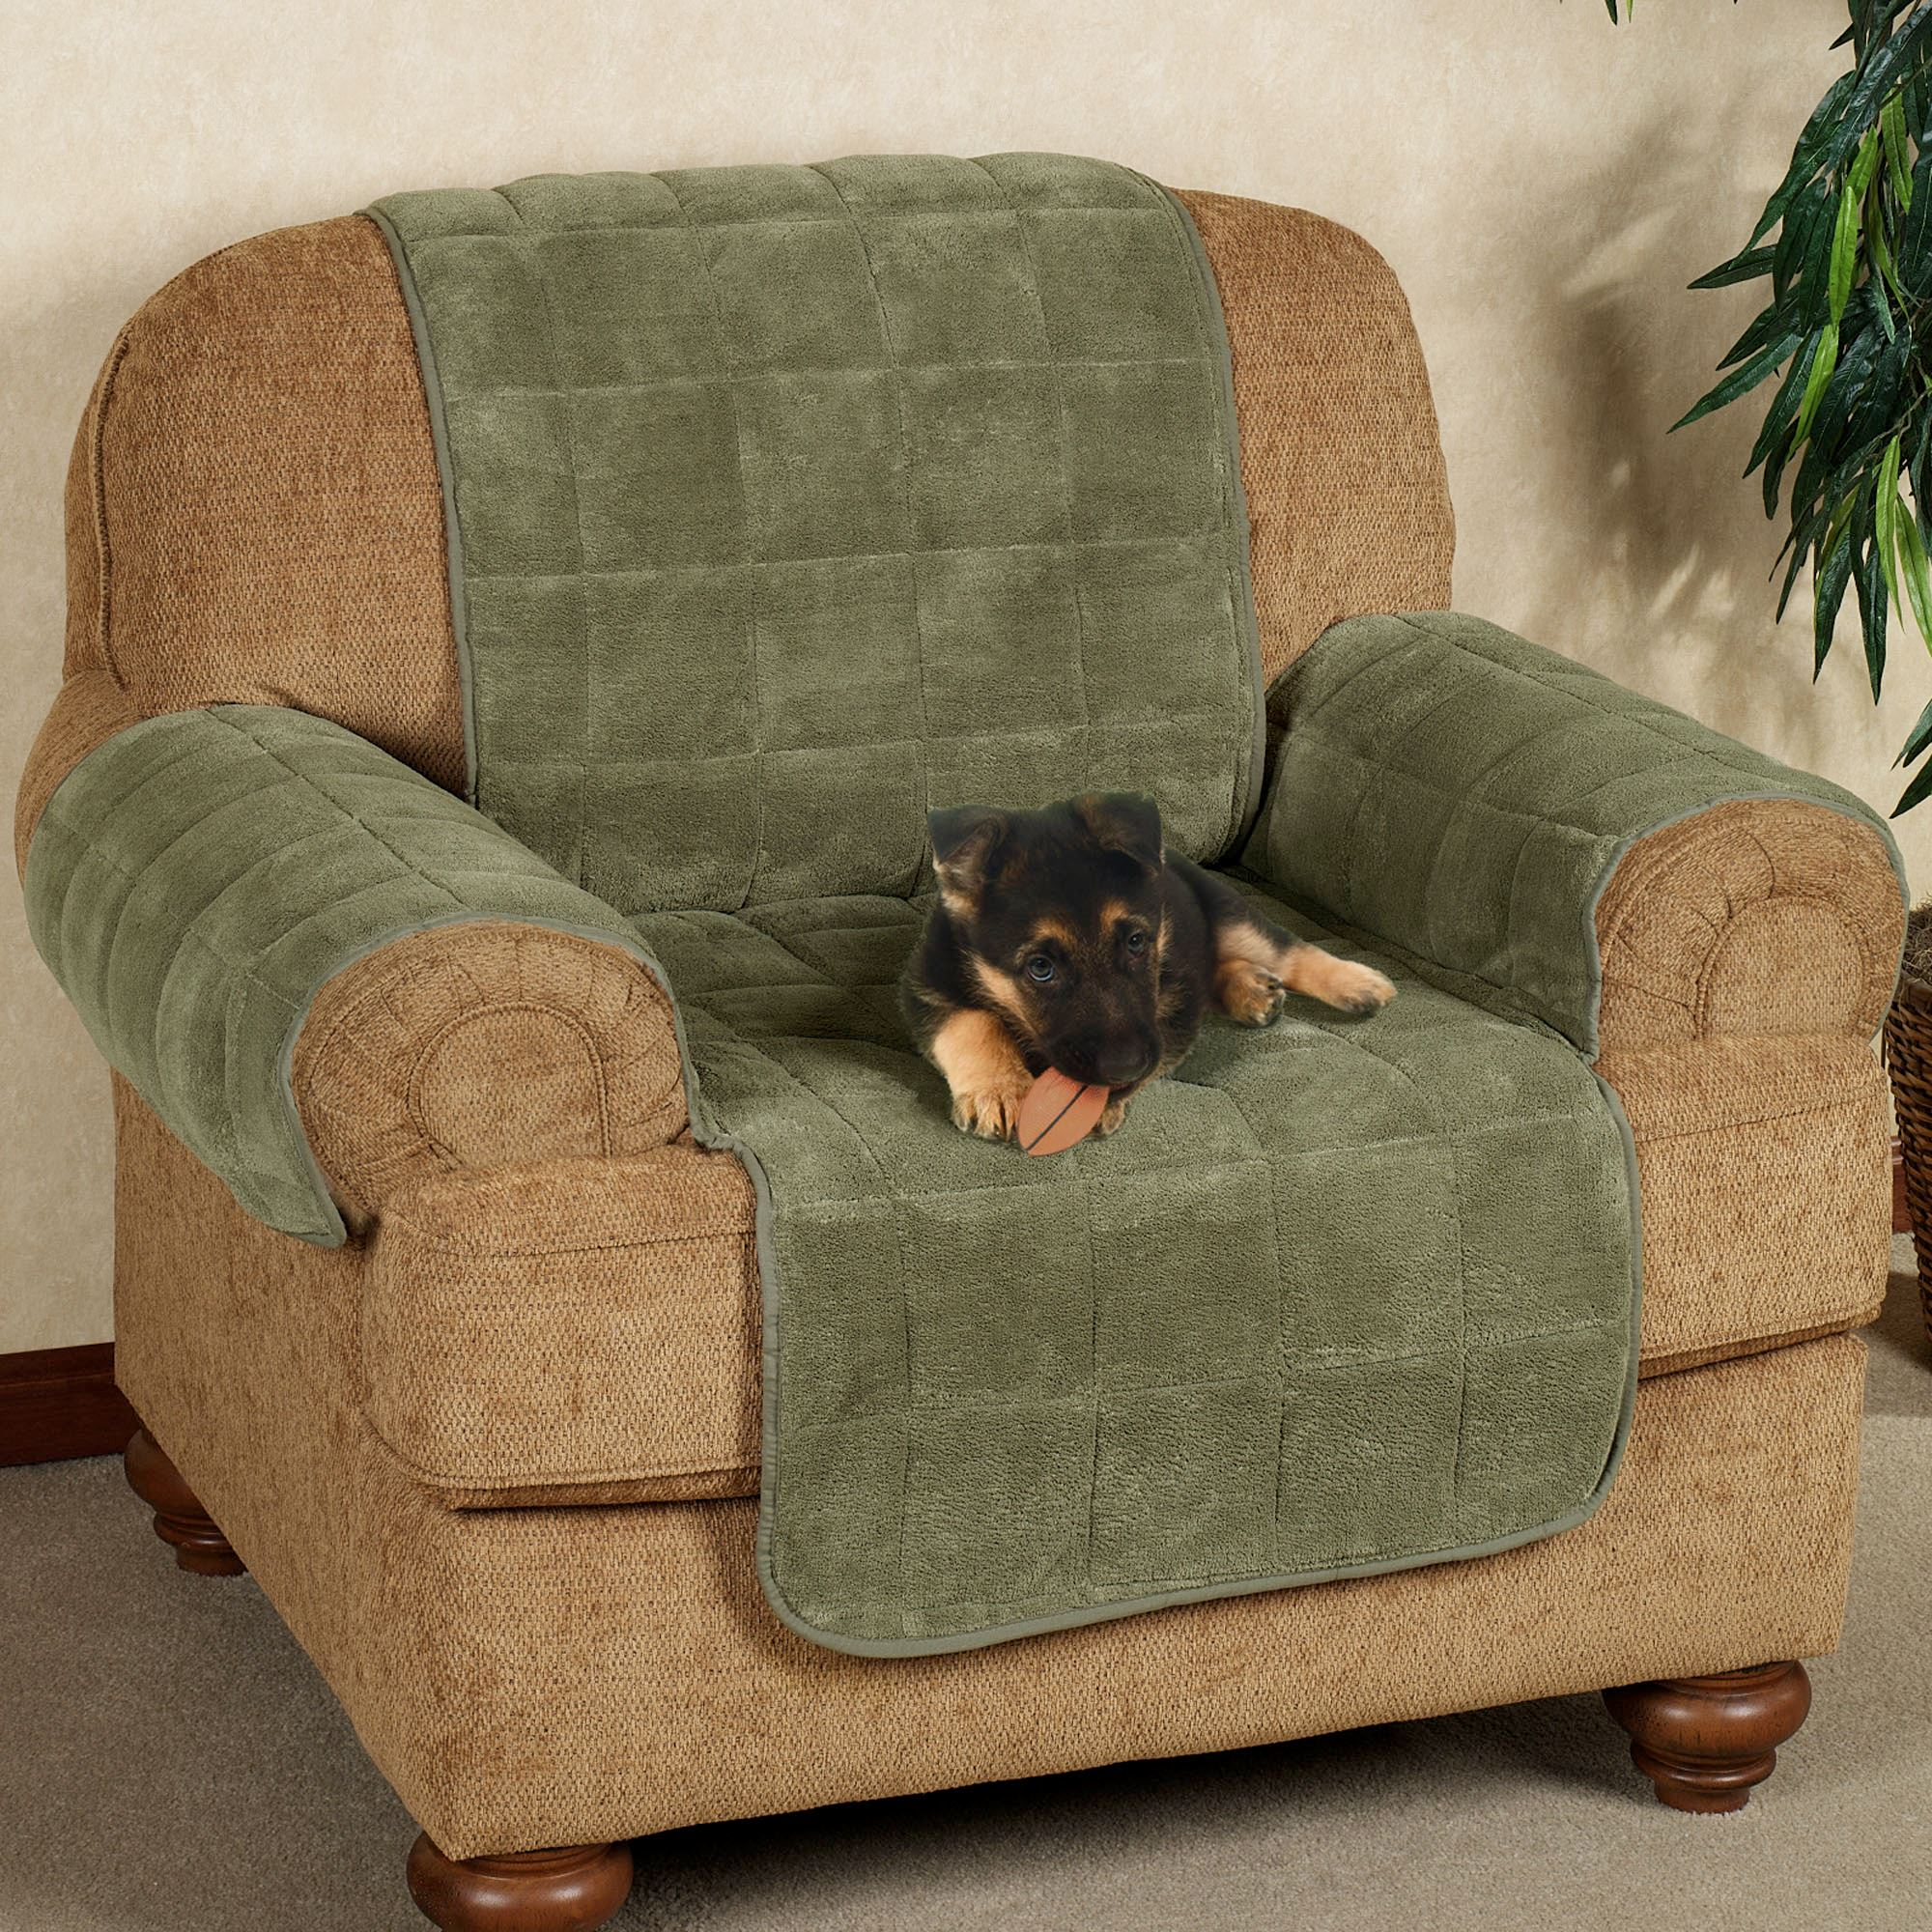 extra long sofa bed two seater gumtree microplush pet furniture covers with longer back flap